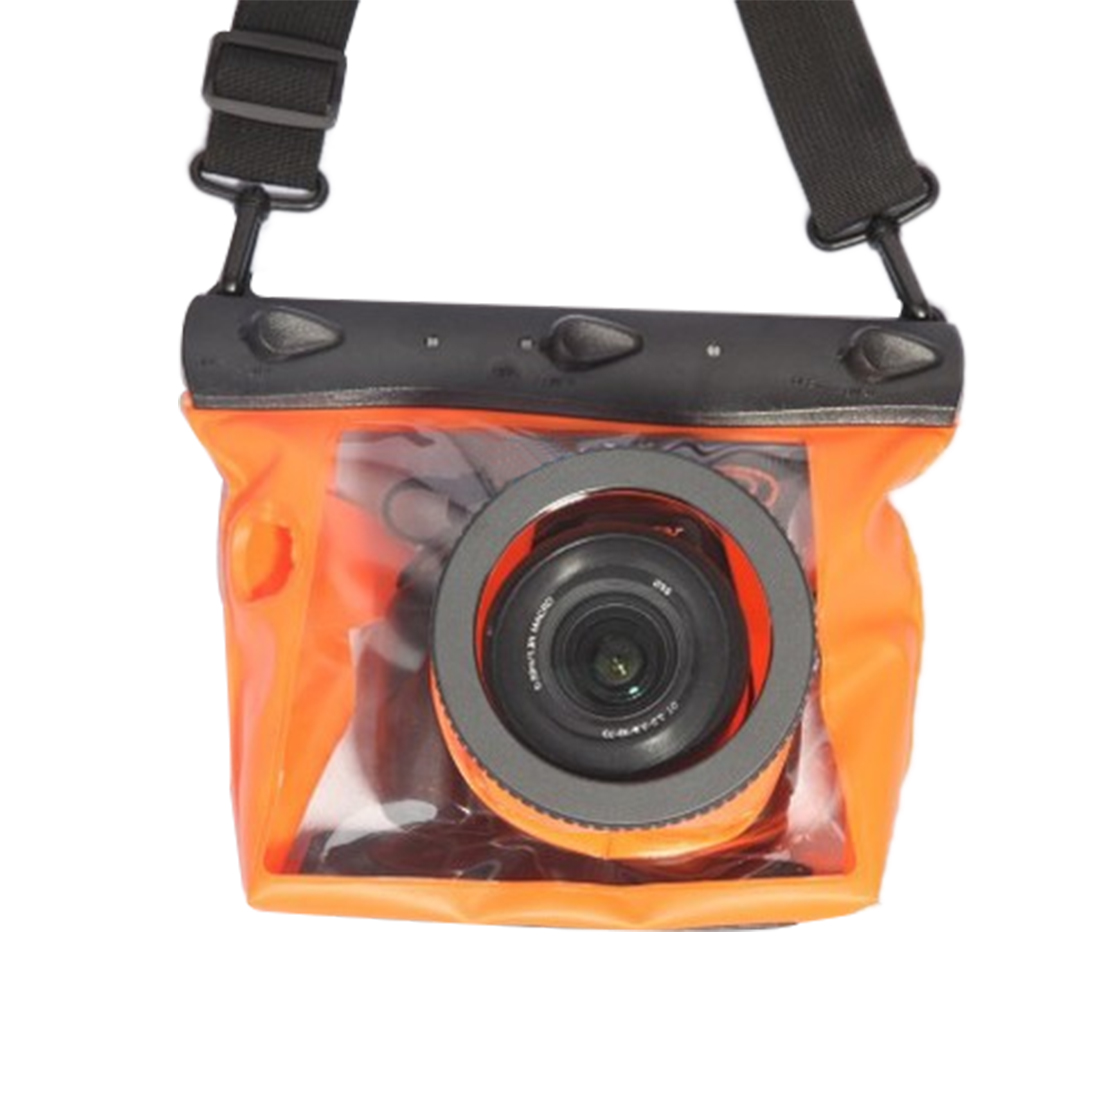 Centechia 20 Meters Underwater Diving Camera Housing Case Pouch Dry Bag Camera Waterproof Dry Bag for Canon Nikon DSLR SLR